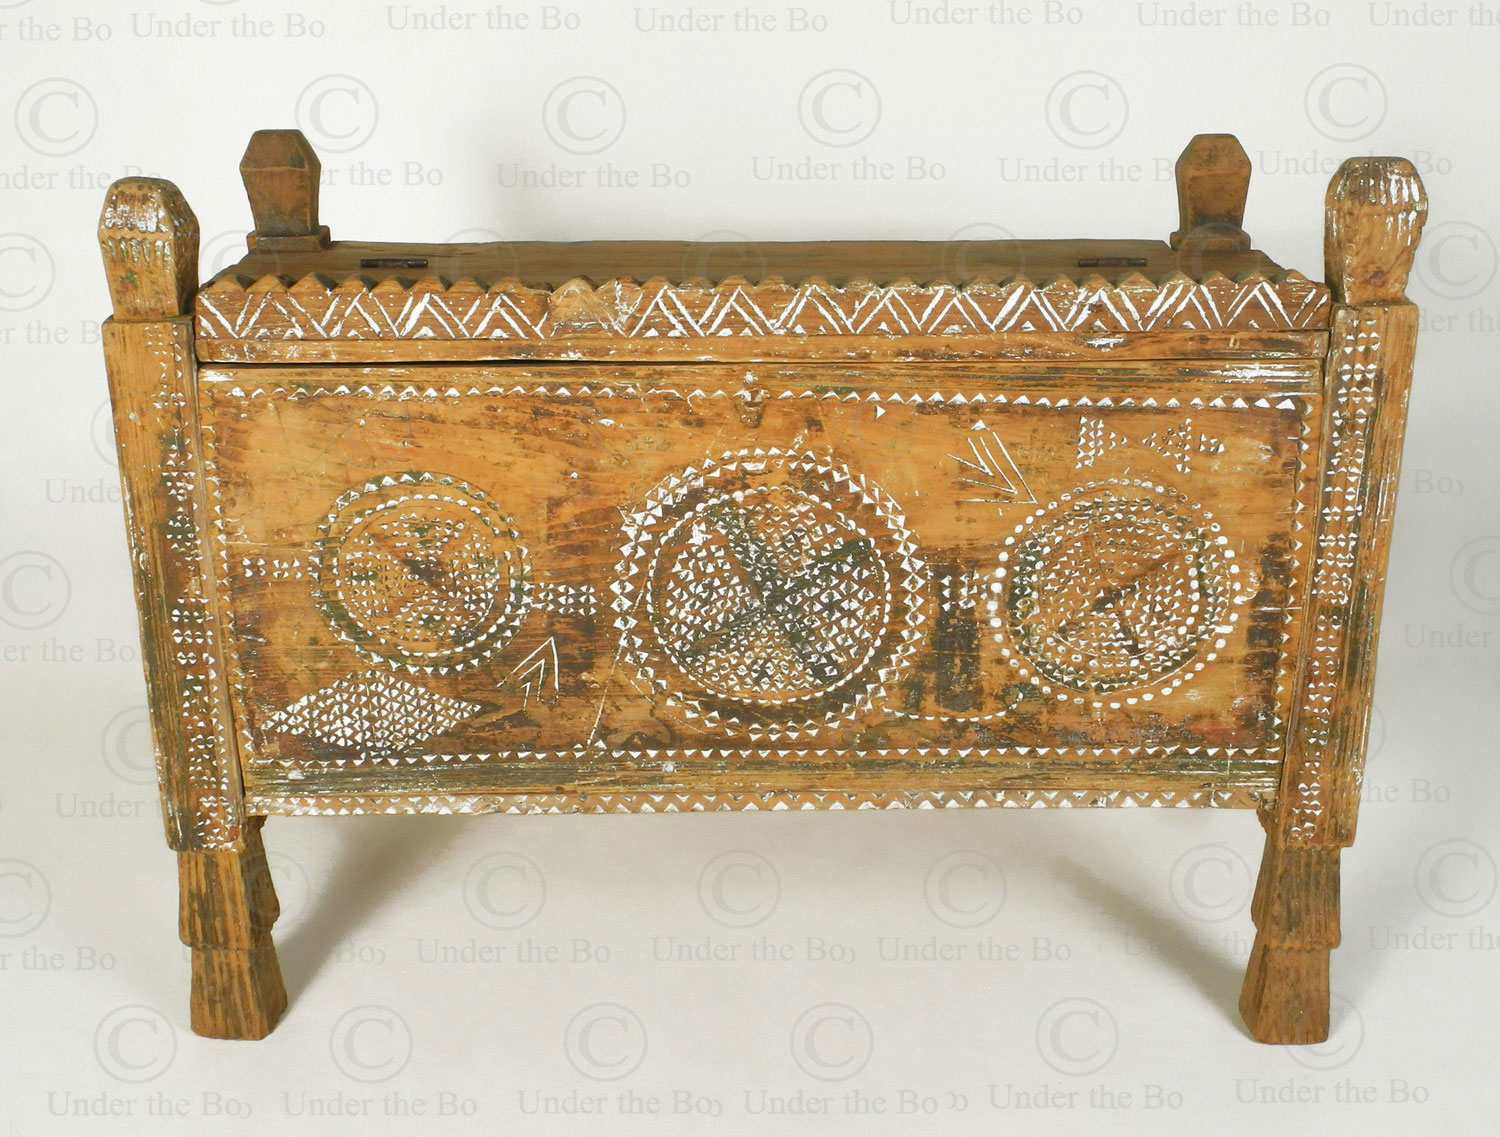 Waziristan antique chest 17F12. Waziristan region, North-Western Pakistan.